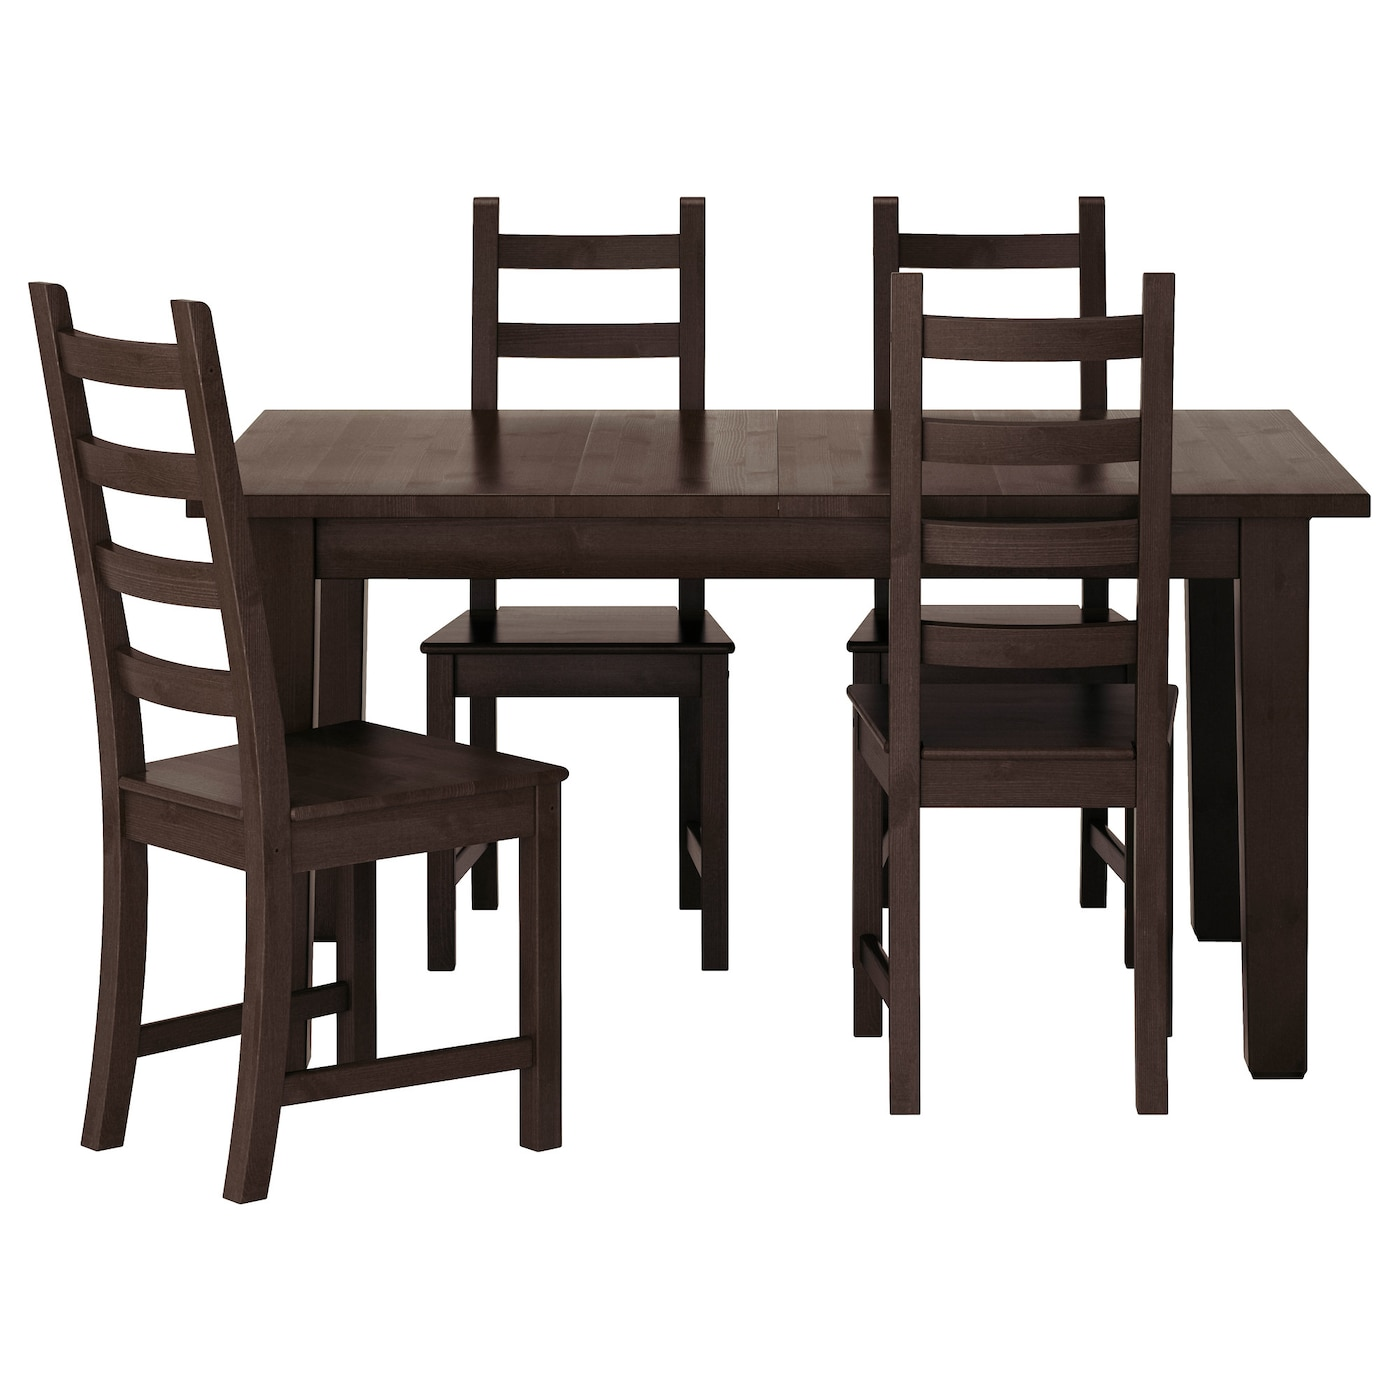 IKEA KAUSTBY STORNAS Table And 4 Chairs Solid Pine A Natural Material That Ages